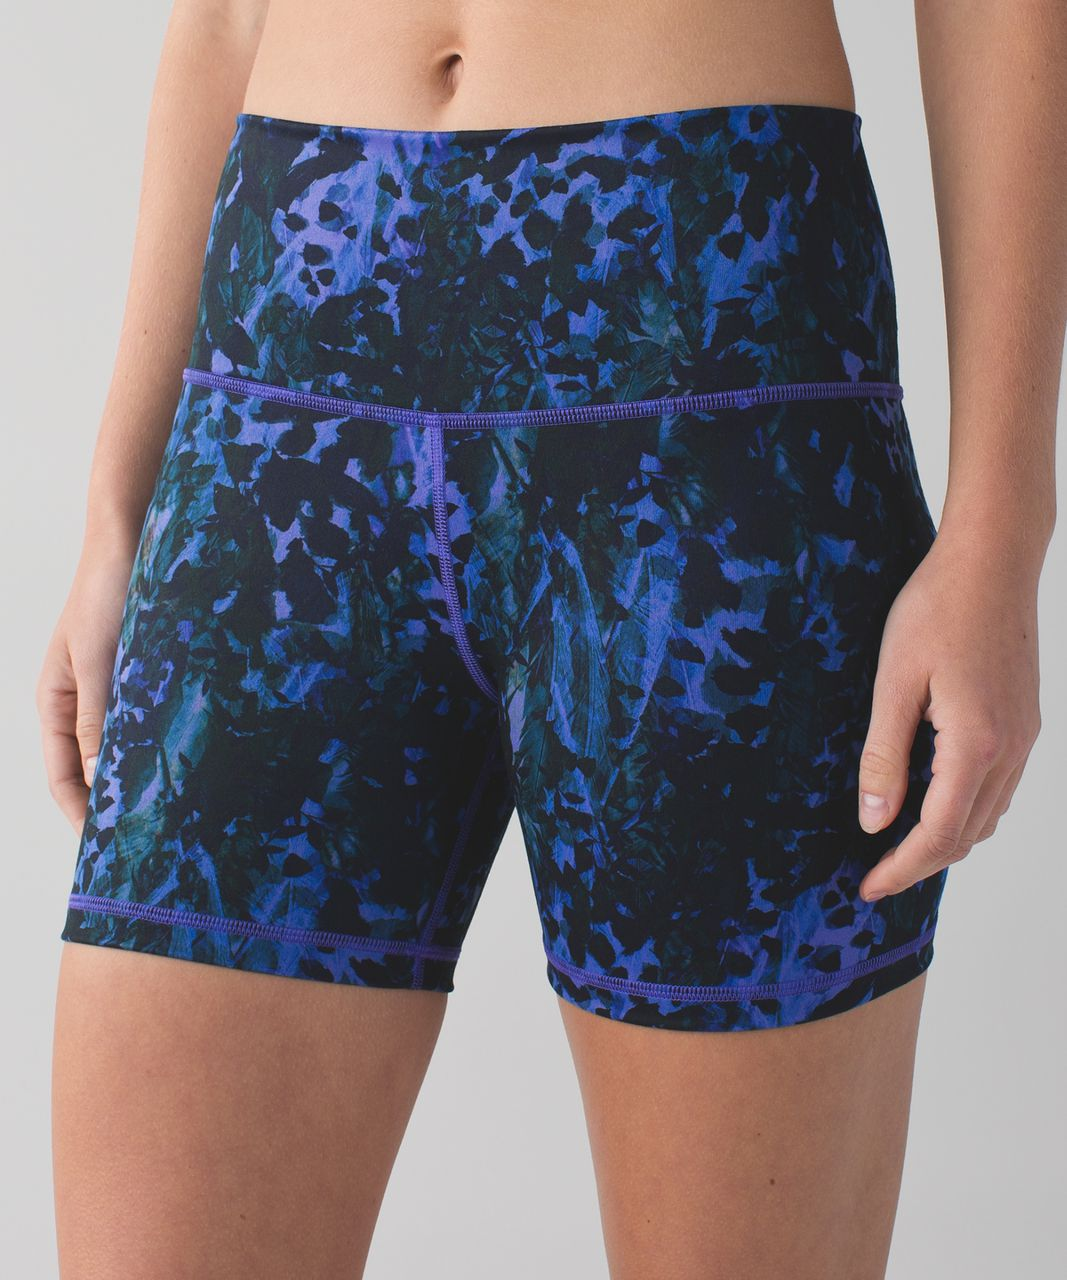 Lululemon Groove Short II (Roll Down - Regular) - Floral Sport Backdrop Iris Flower Multi